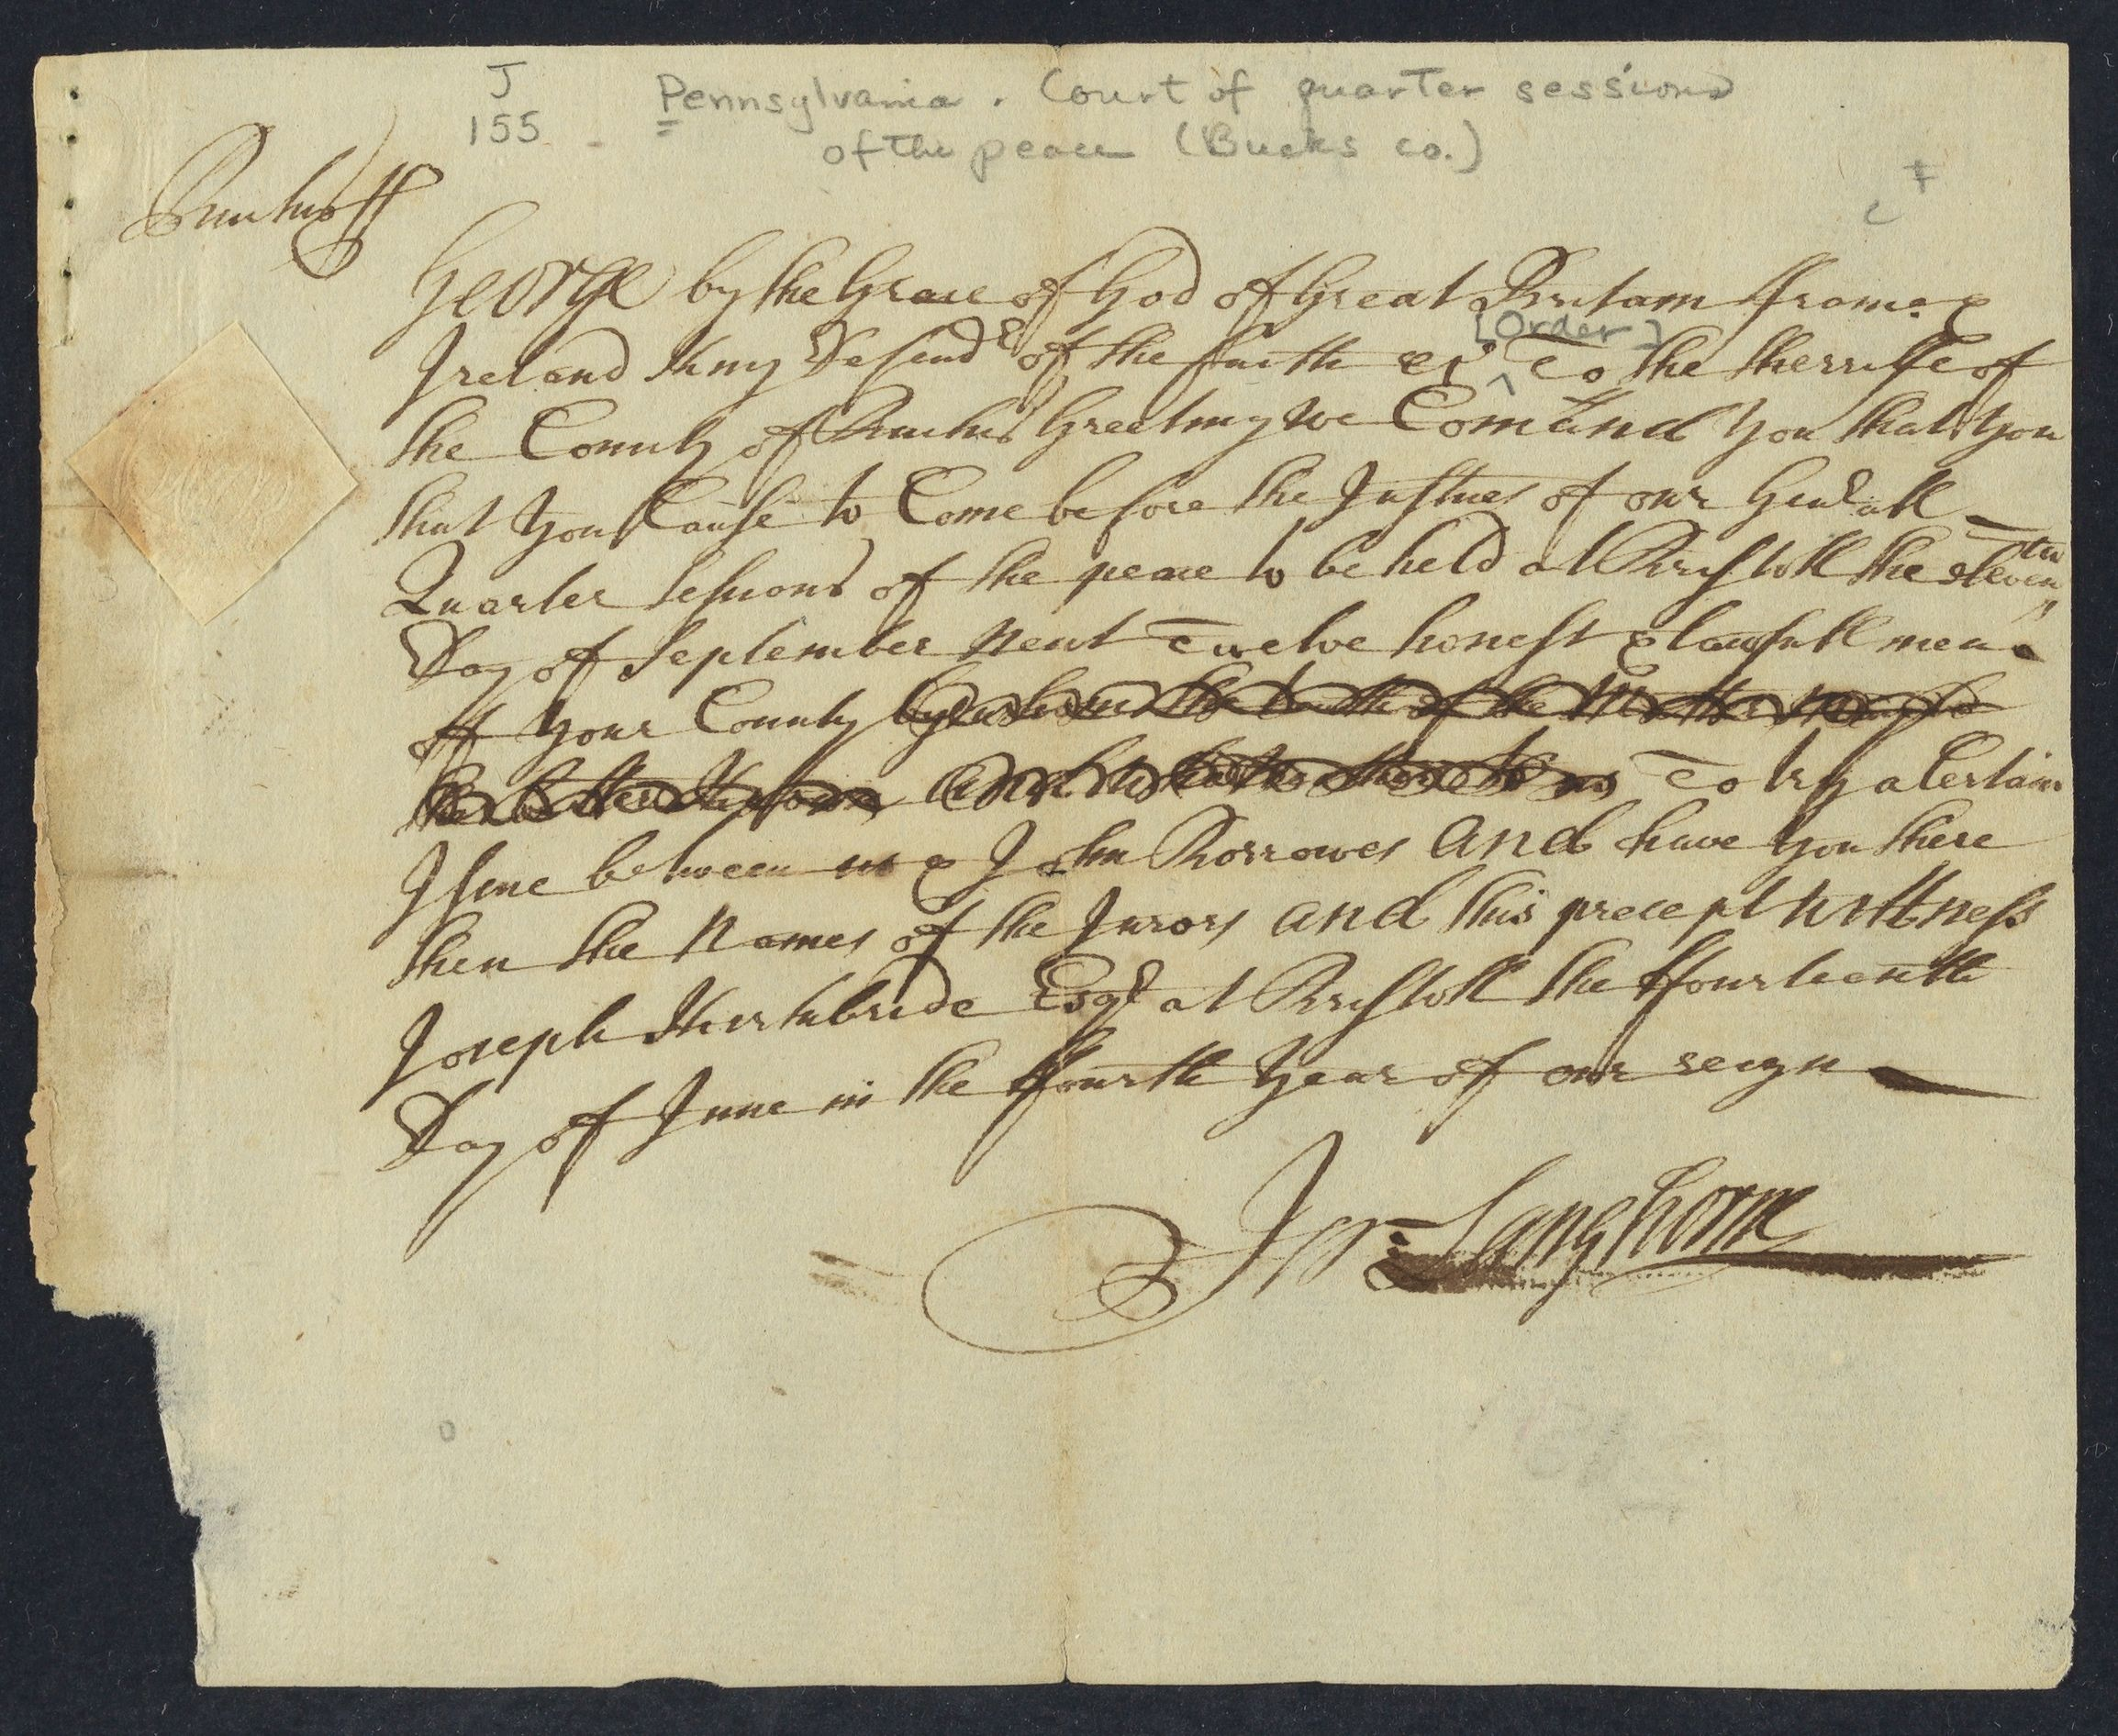 [ Order to the sheriff of Bucks County], 1731